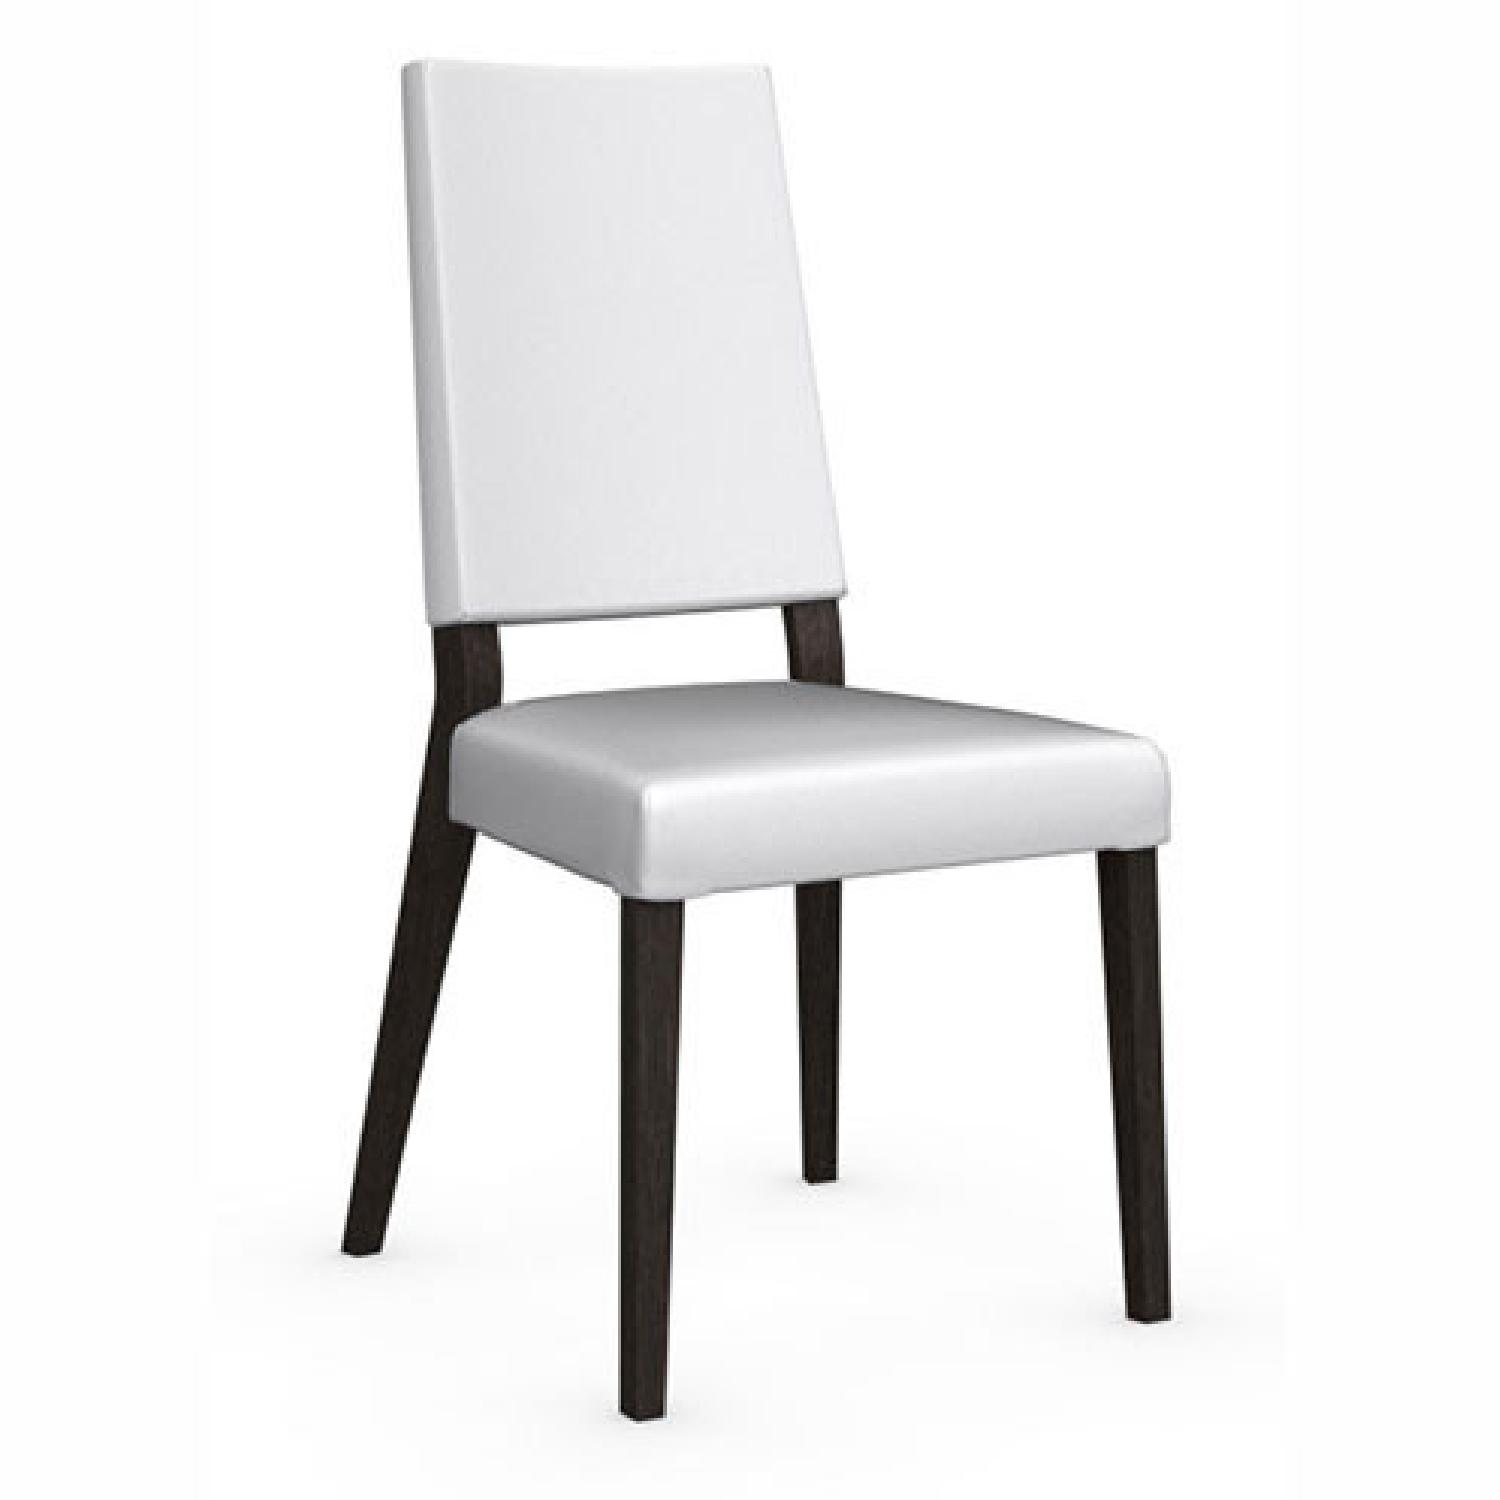 Calligaris Sandy Dining Chairs - image-0